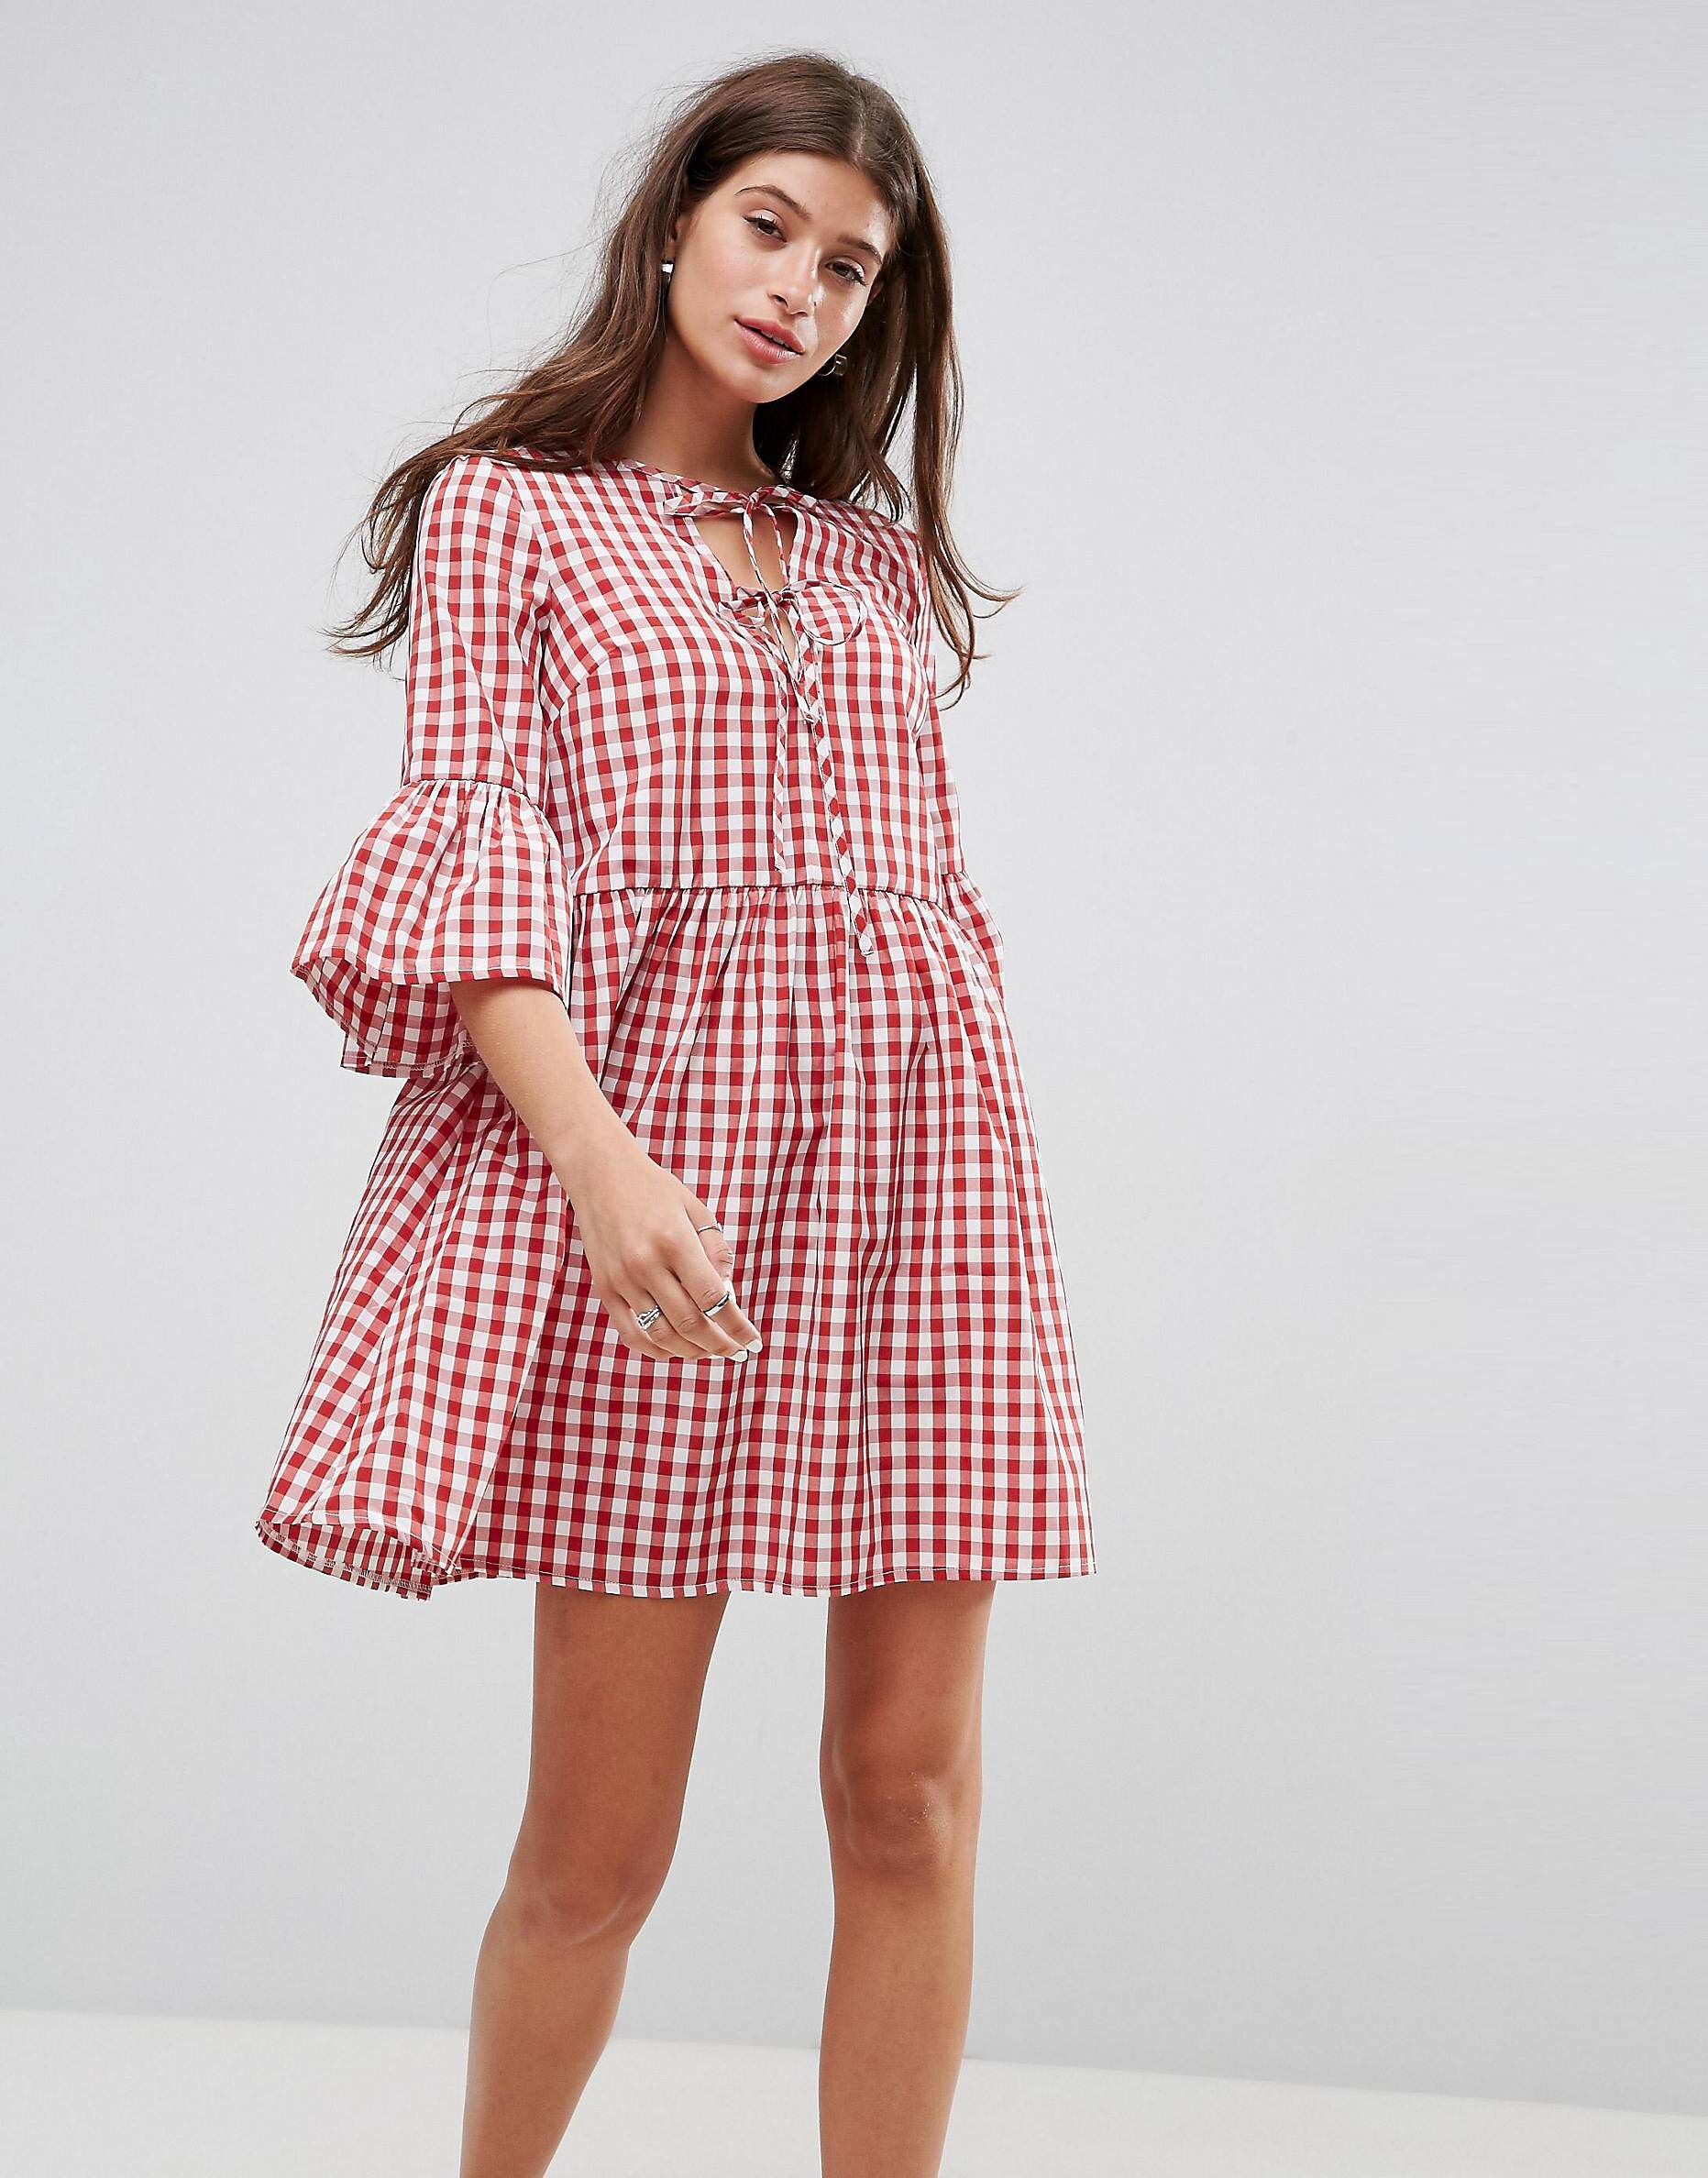 Just when I thought I didn't need something new from ASOS, I